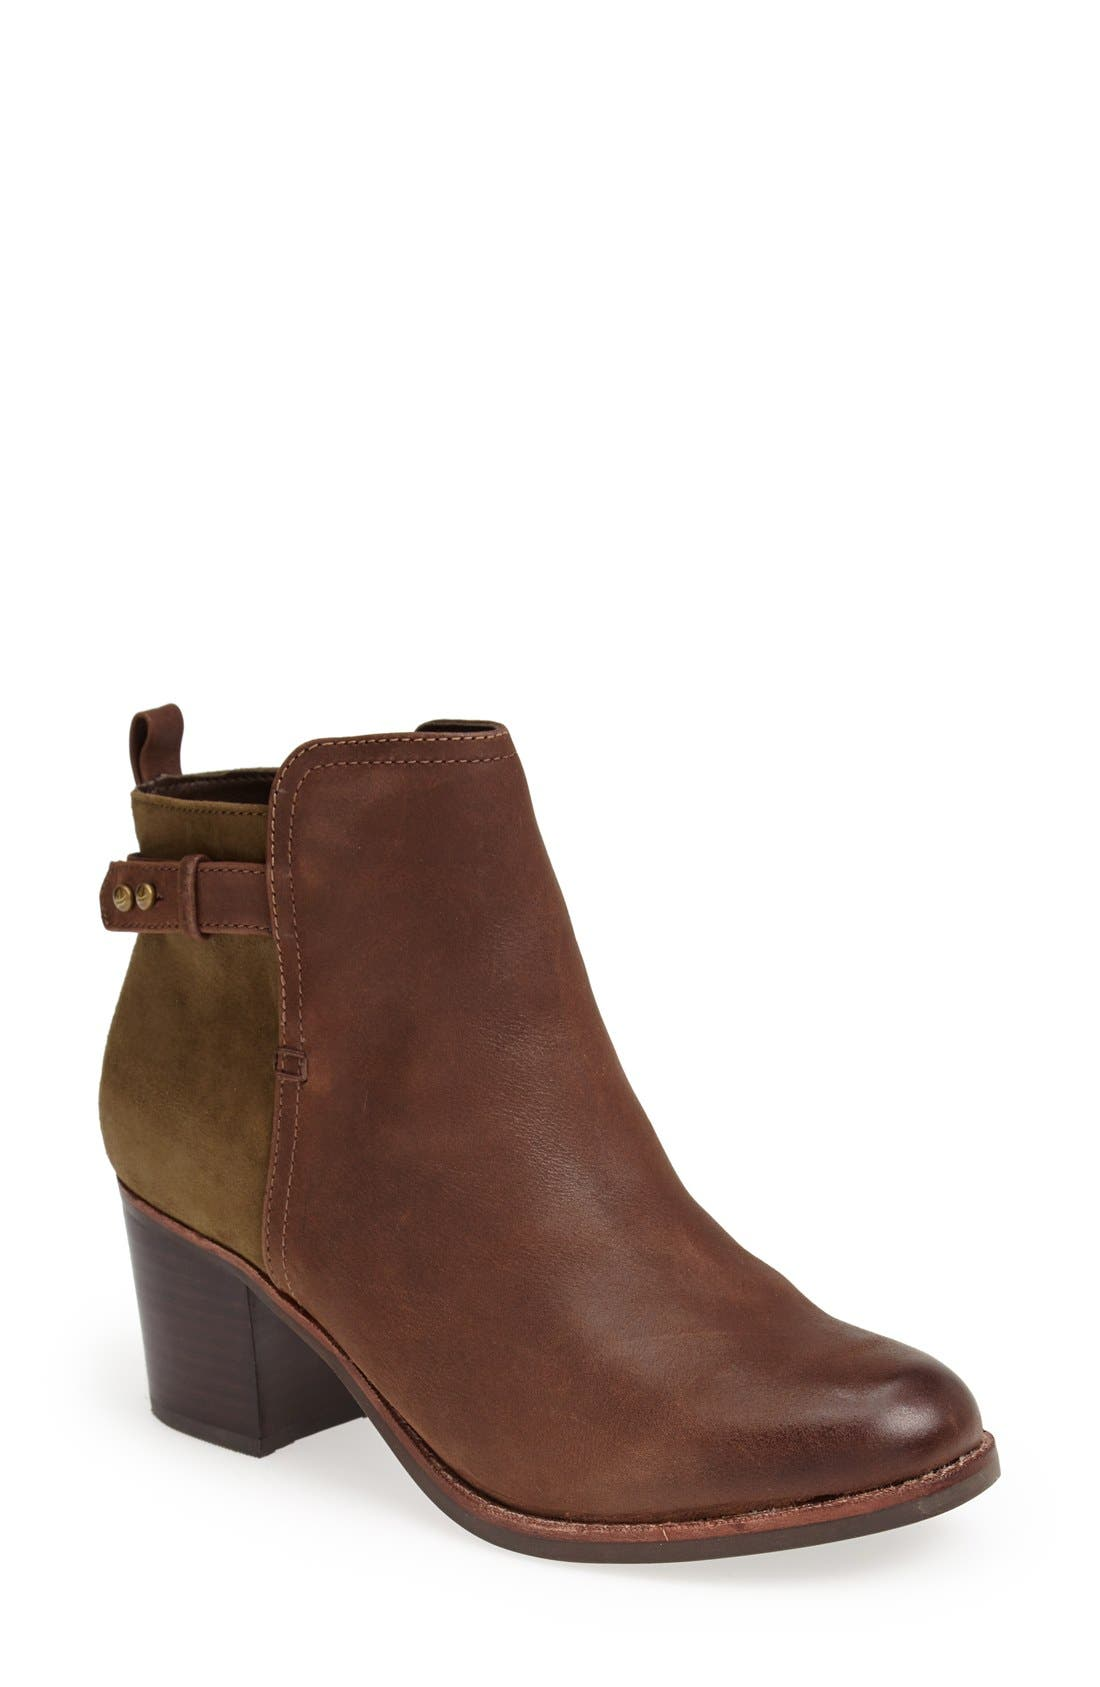 Alternate Image 1 Selected - Sperry 'Ambrose' Boot (Women)